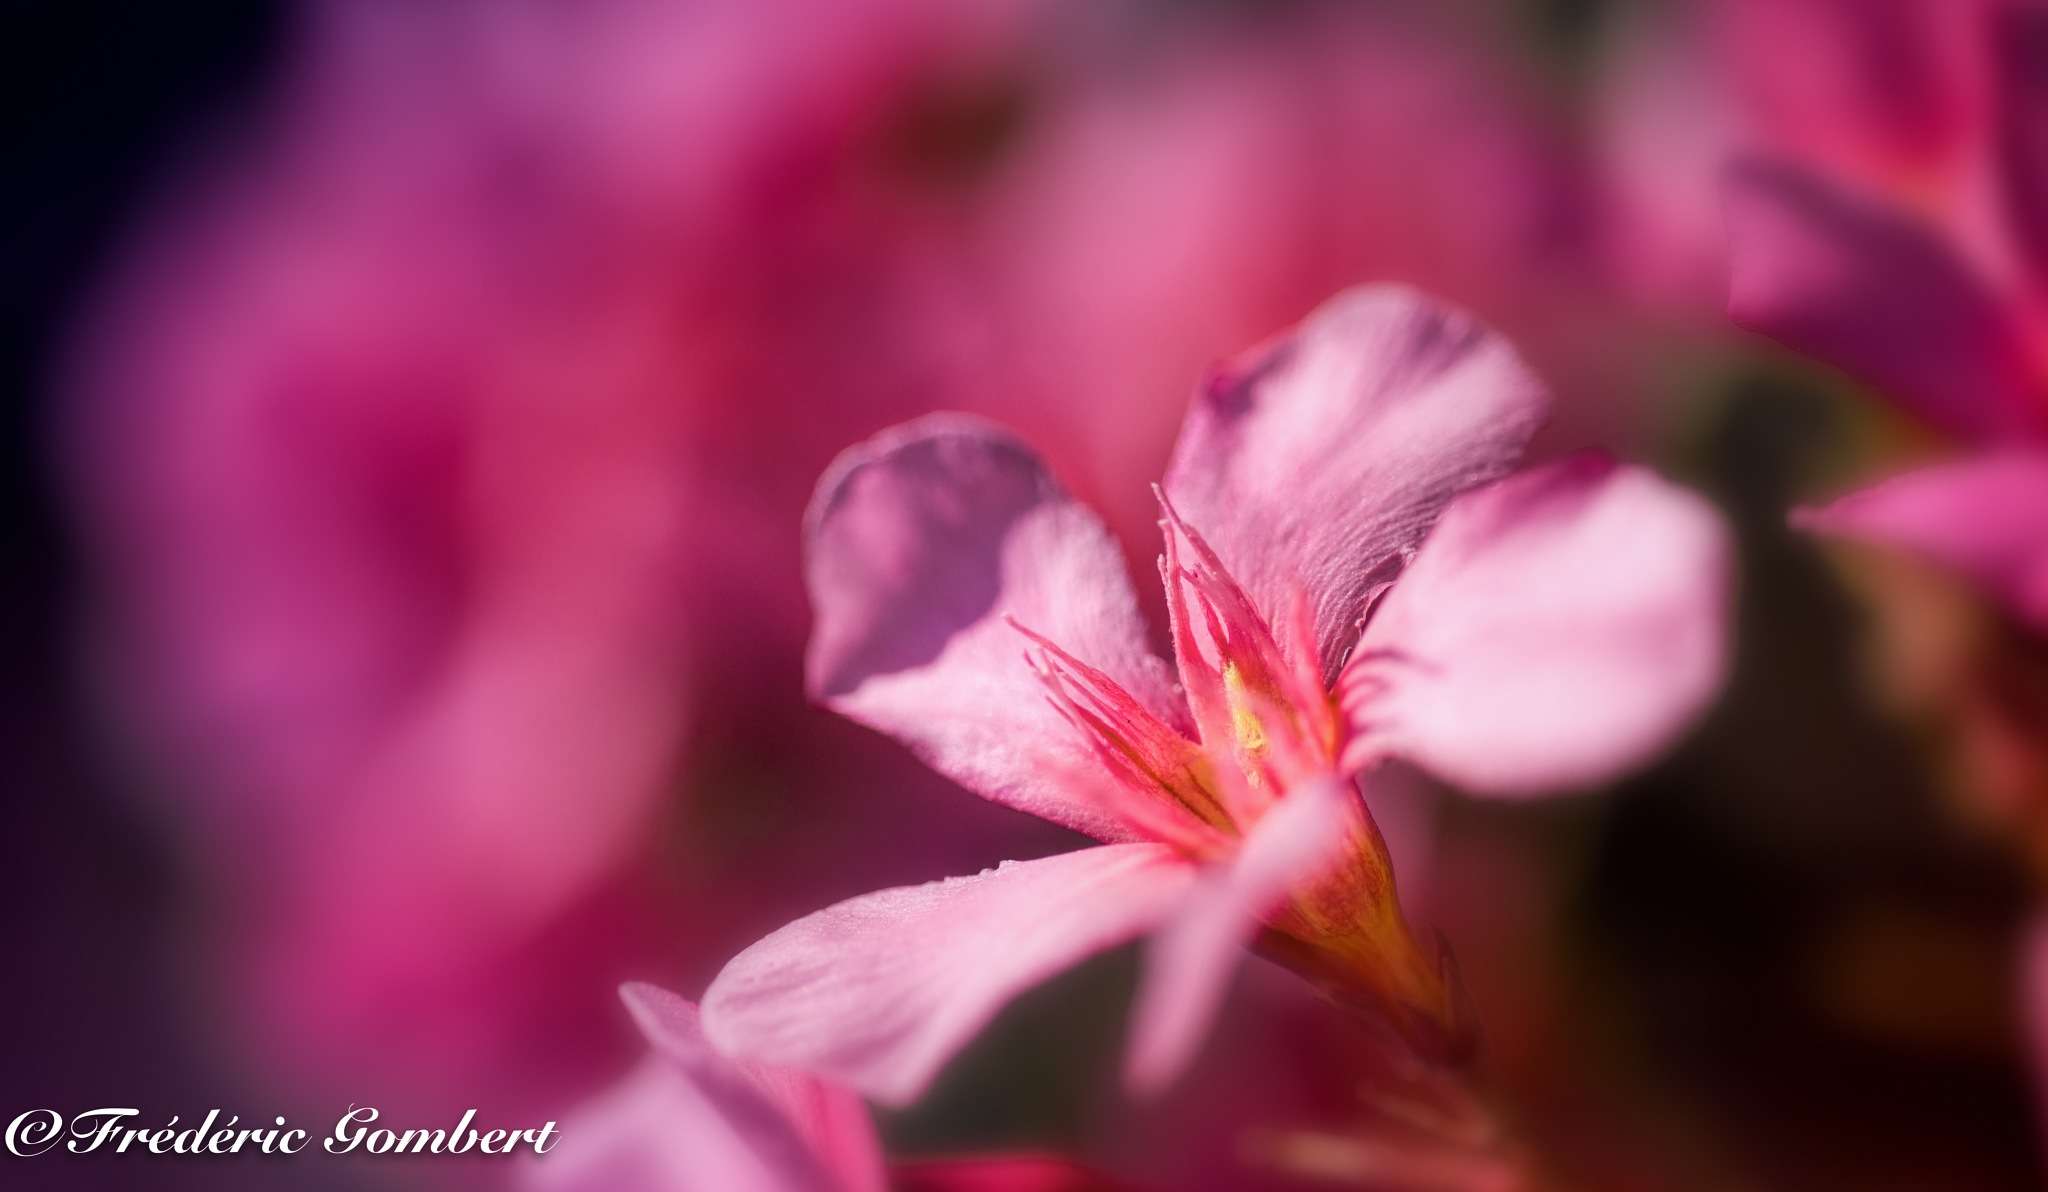 The sun shines by Frederic Gombert